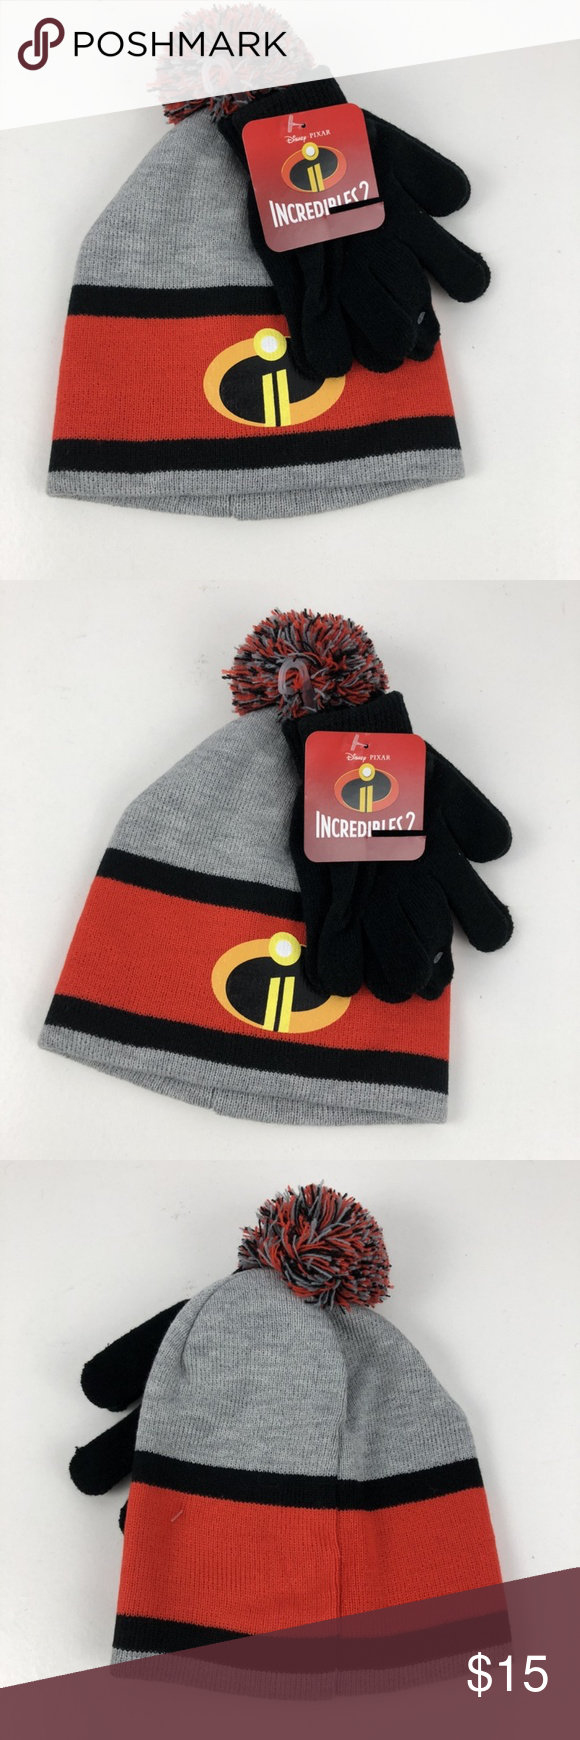 New Disney Incredibles 2 Hat Gloves Set Kids Boys New Disney Incredibles 2  Hat Gloves Set Kids Boys Girls Gray Black Beanie Knit Disney Accessories  Hats 4cba5bdbcf02